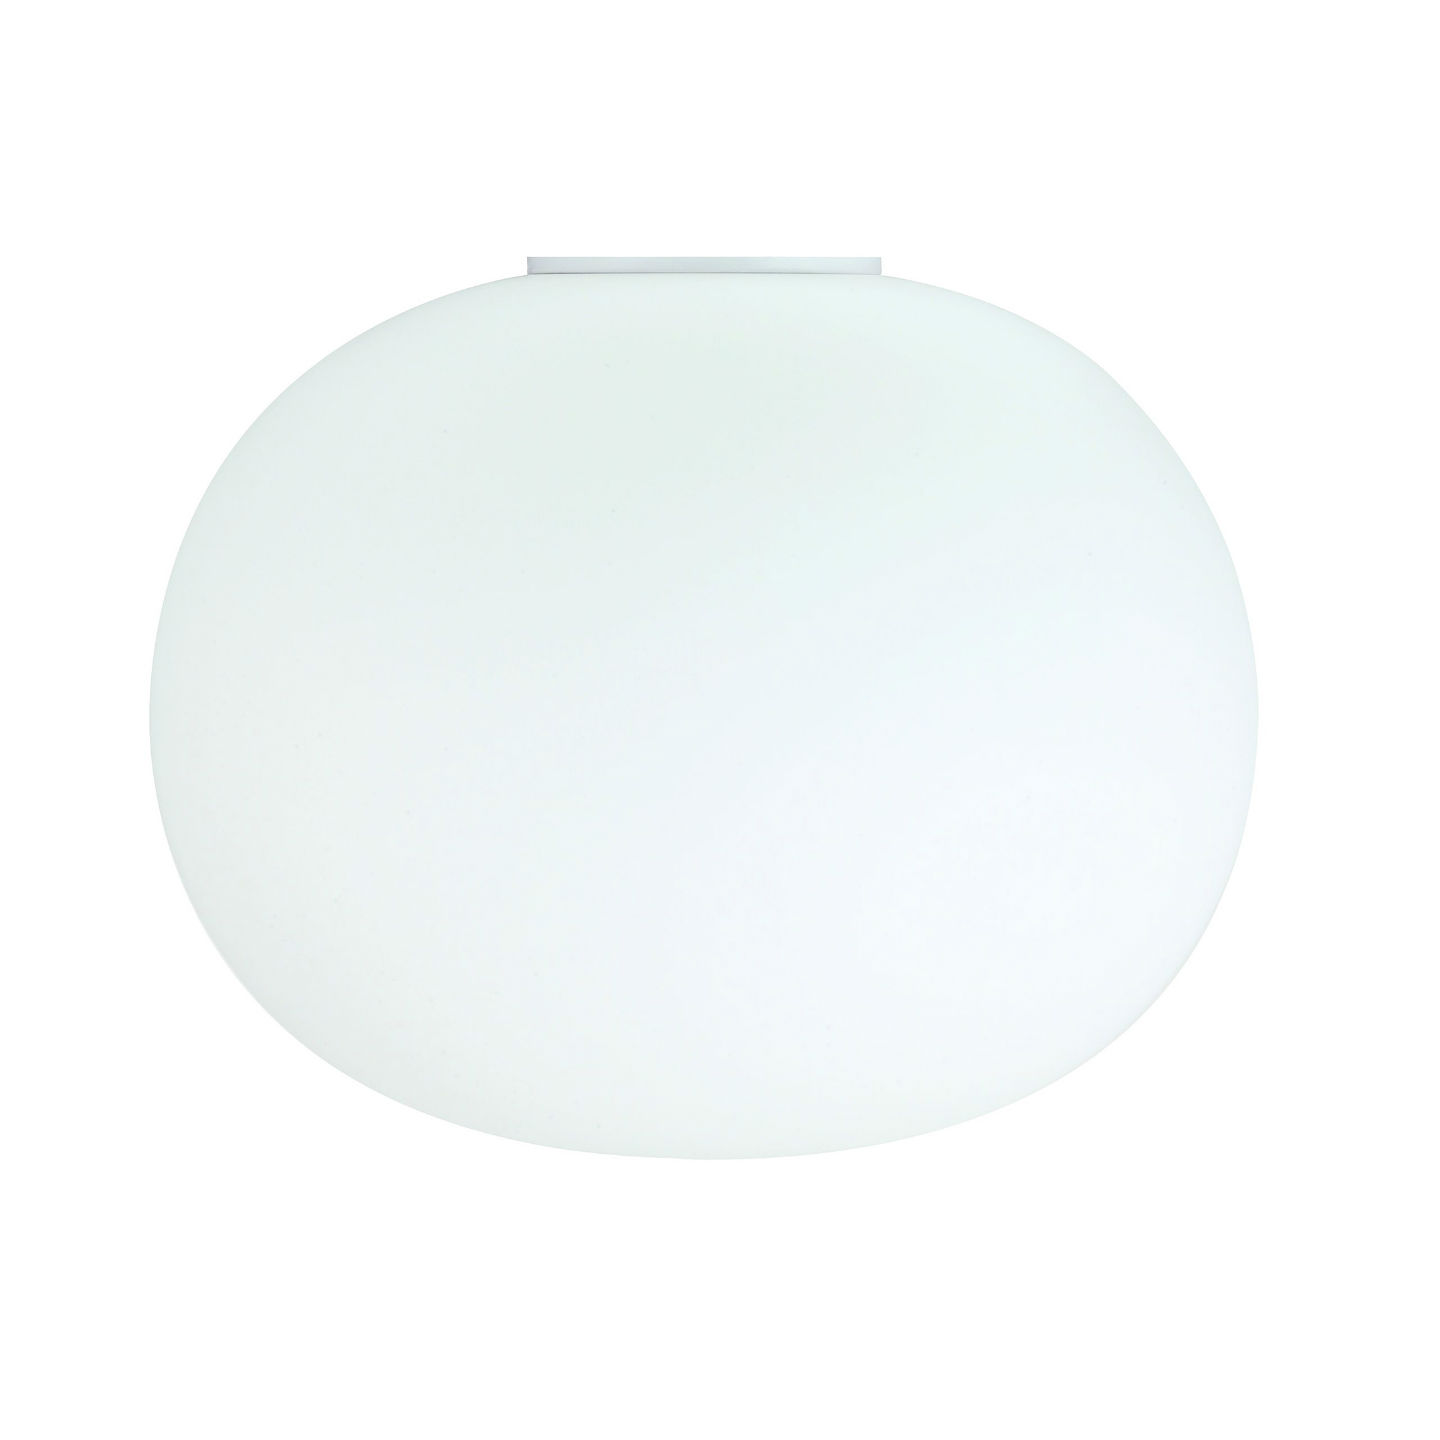 Glo Ball C1 ceiling lamp 33cm E27 150W HSGS - white opal